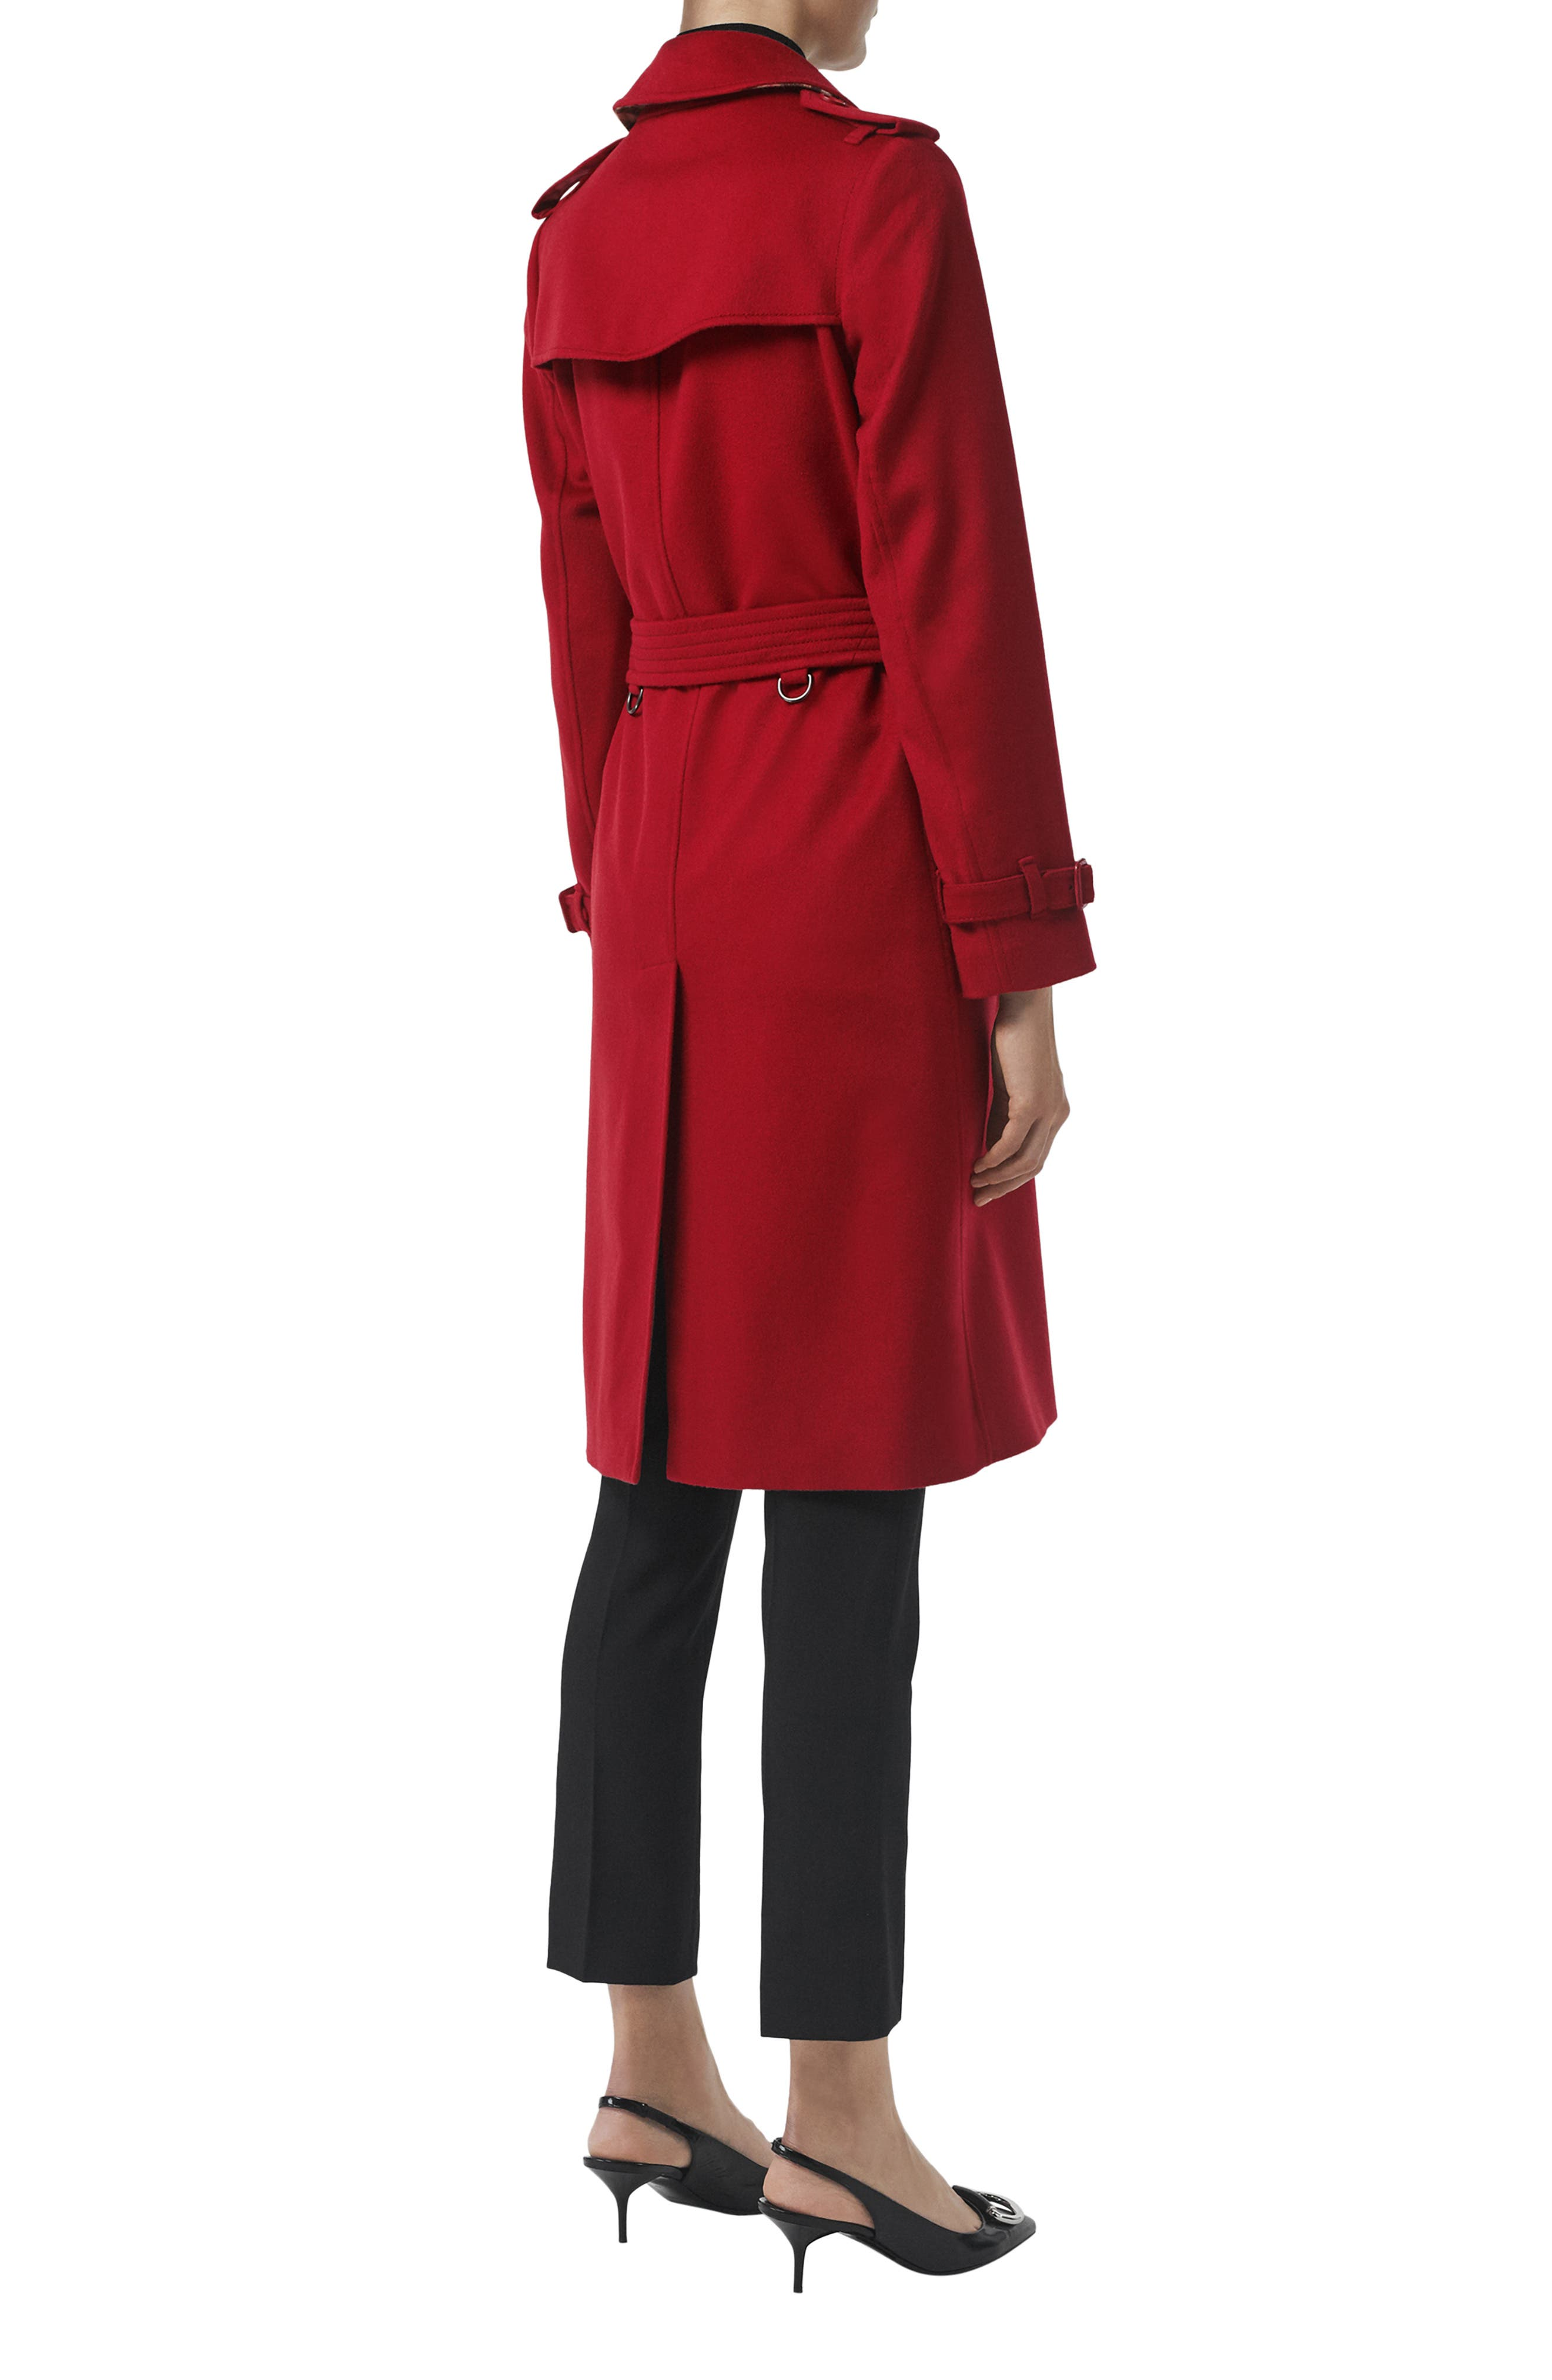 BURBERRY, Kensington Cashmere Trench Coat, Alternate thumbnail 6, color, PARADE RED